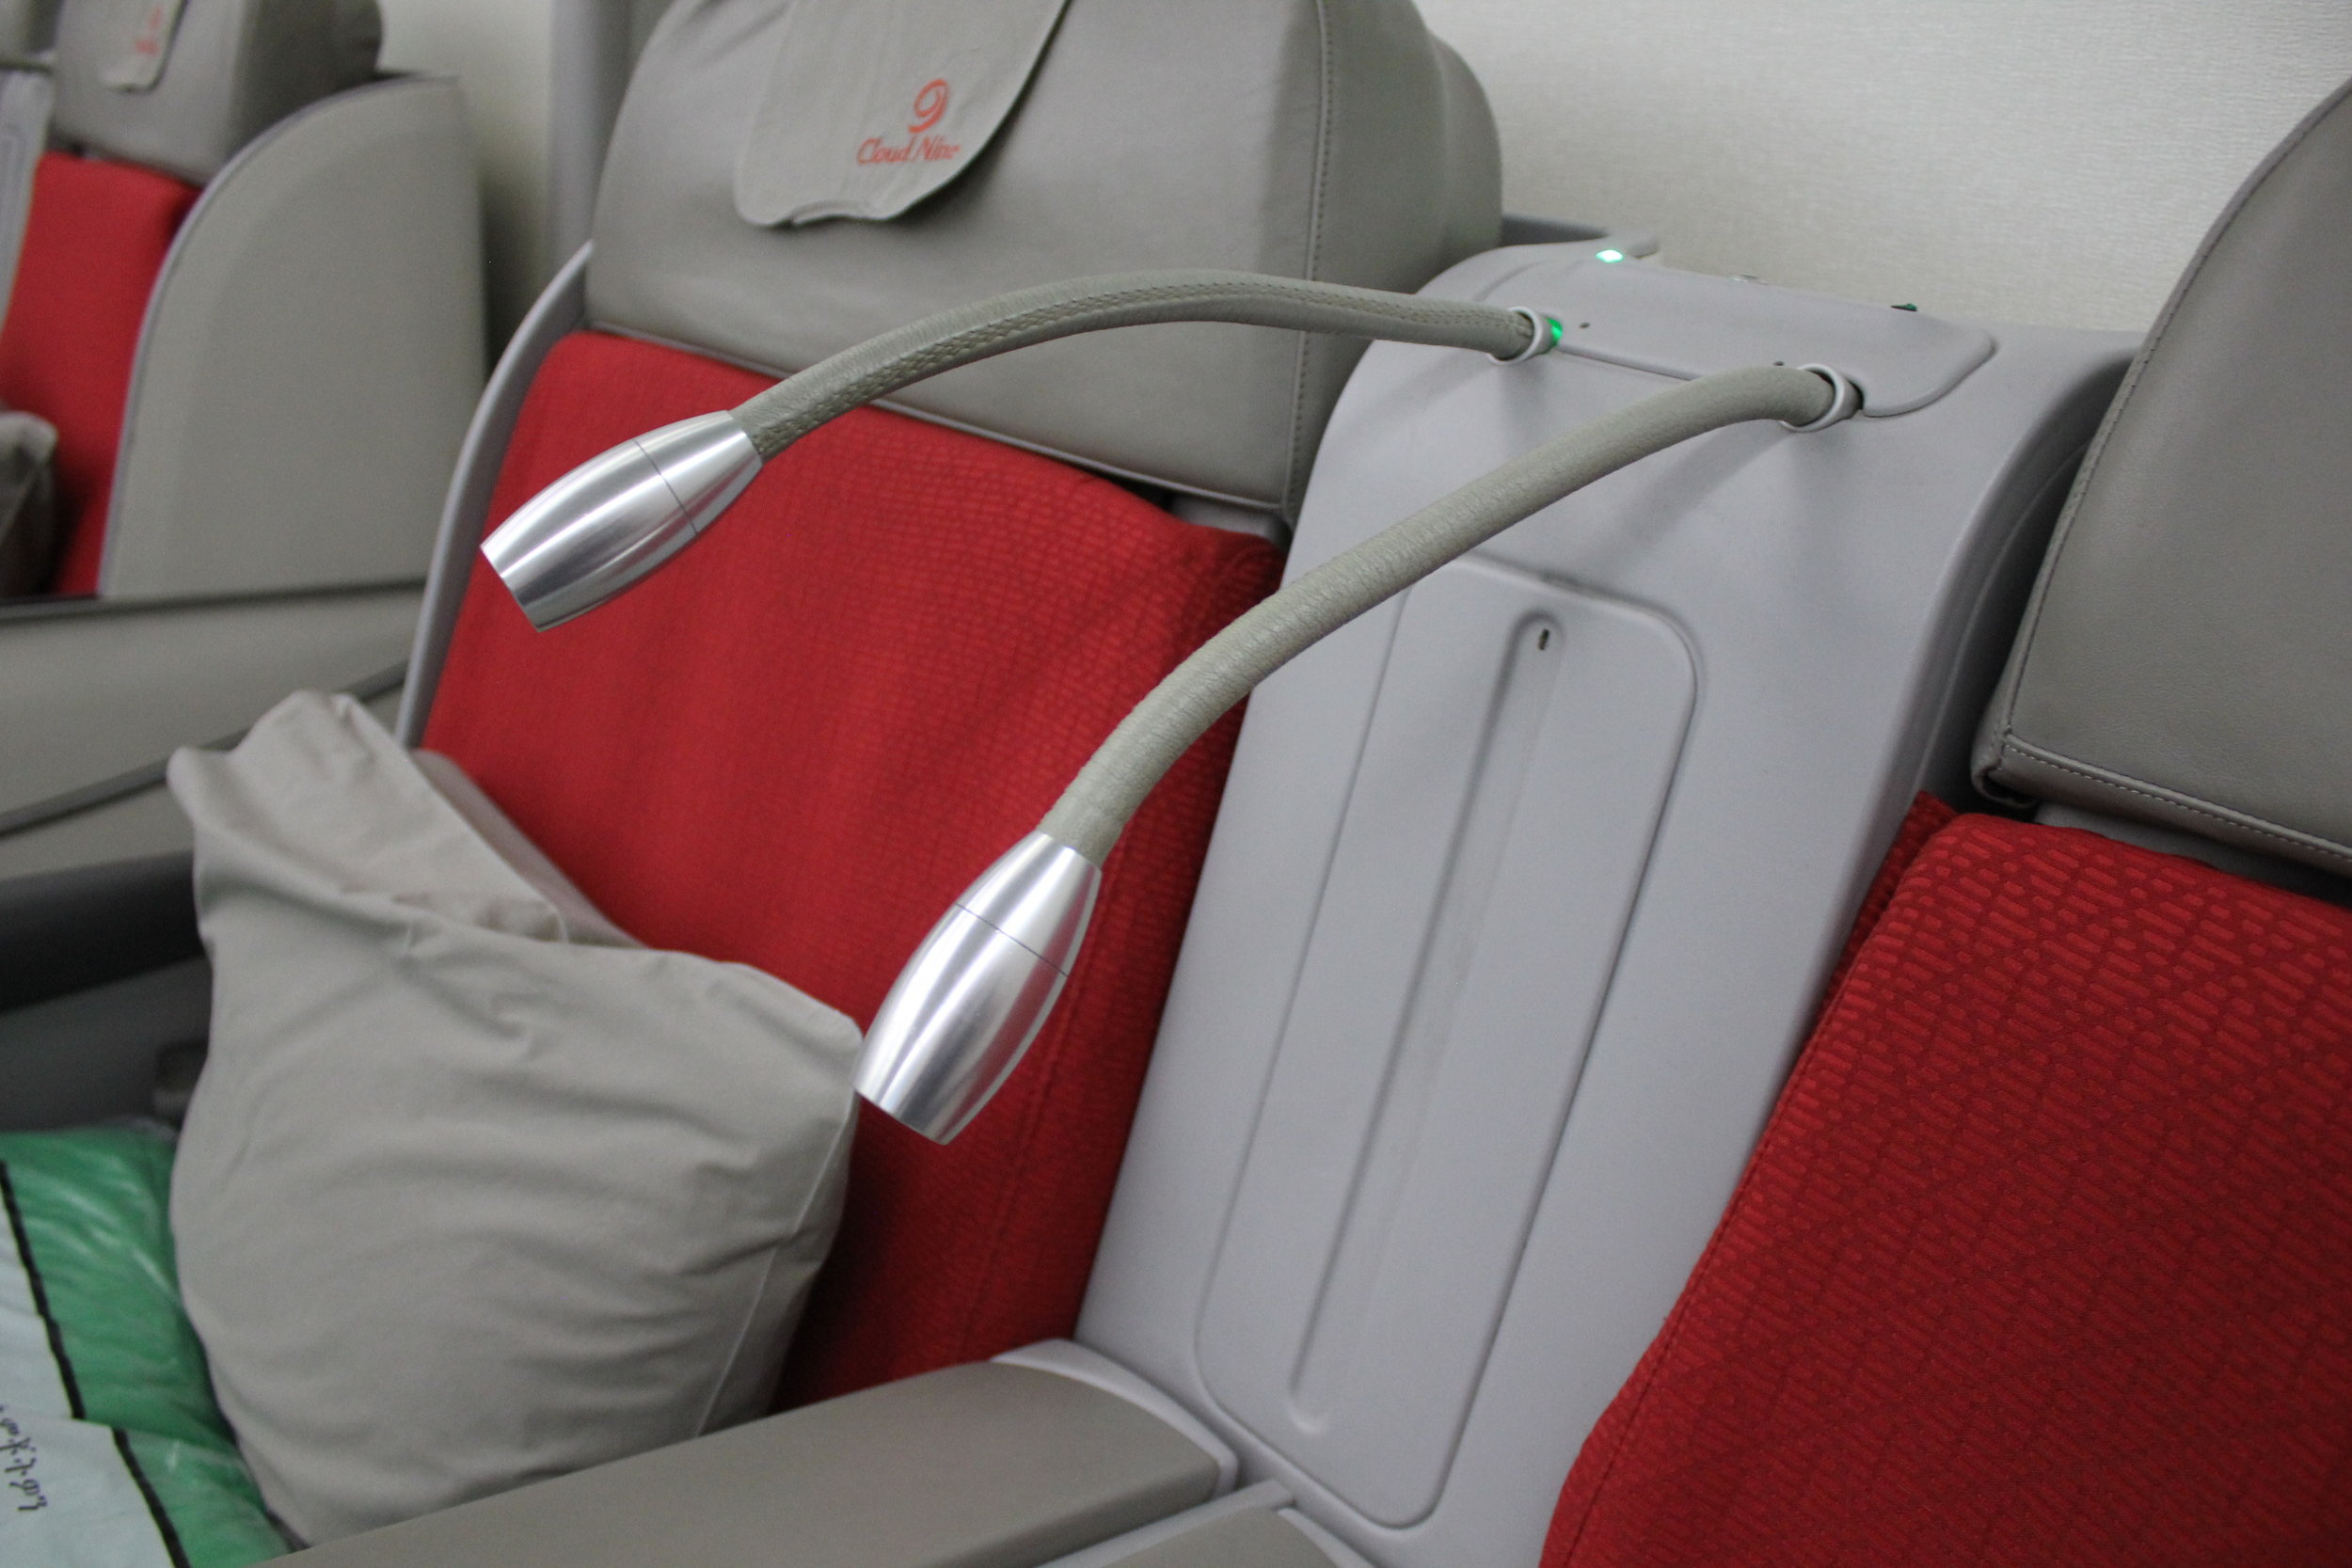 Ethiopian Airlines business class – Reading light